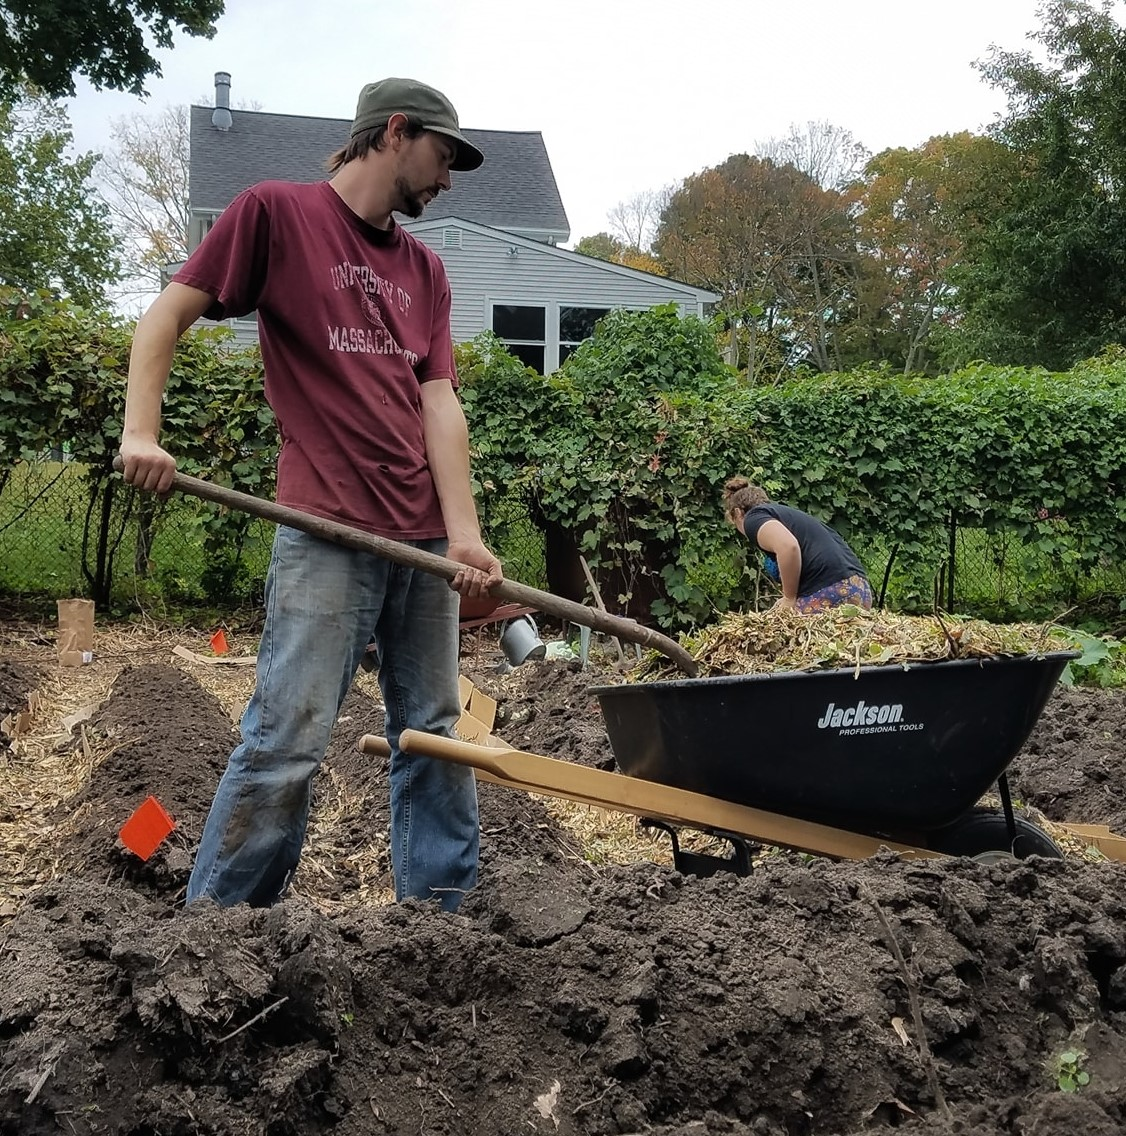 Jay in the field distributing wood chips from a wheelbarrow